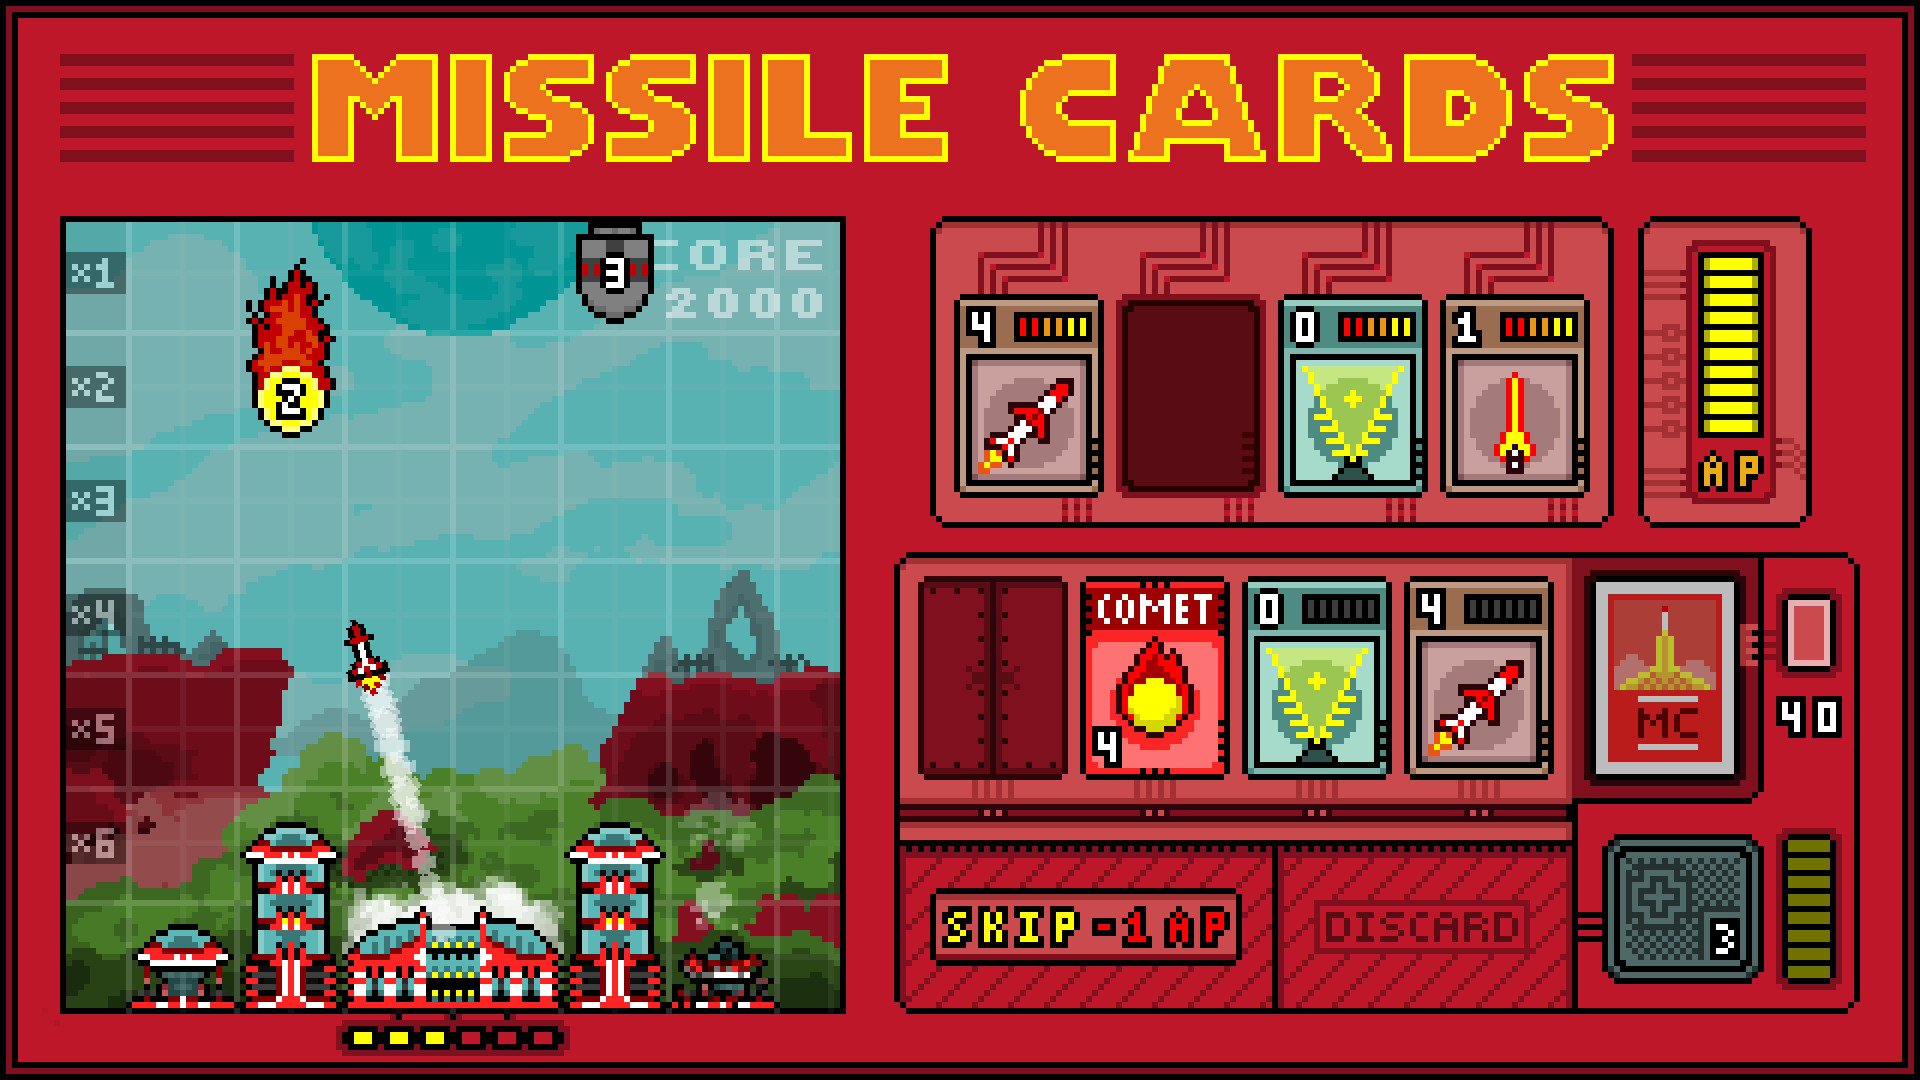 Missile Cards will combine missile defense and Solitaire when it arrives on iOS this year